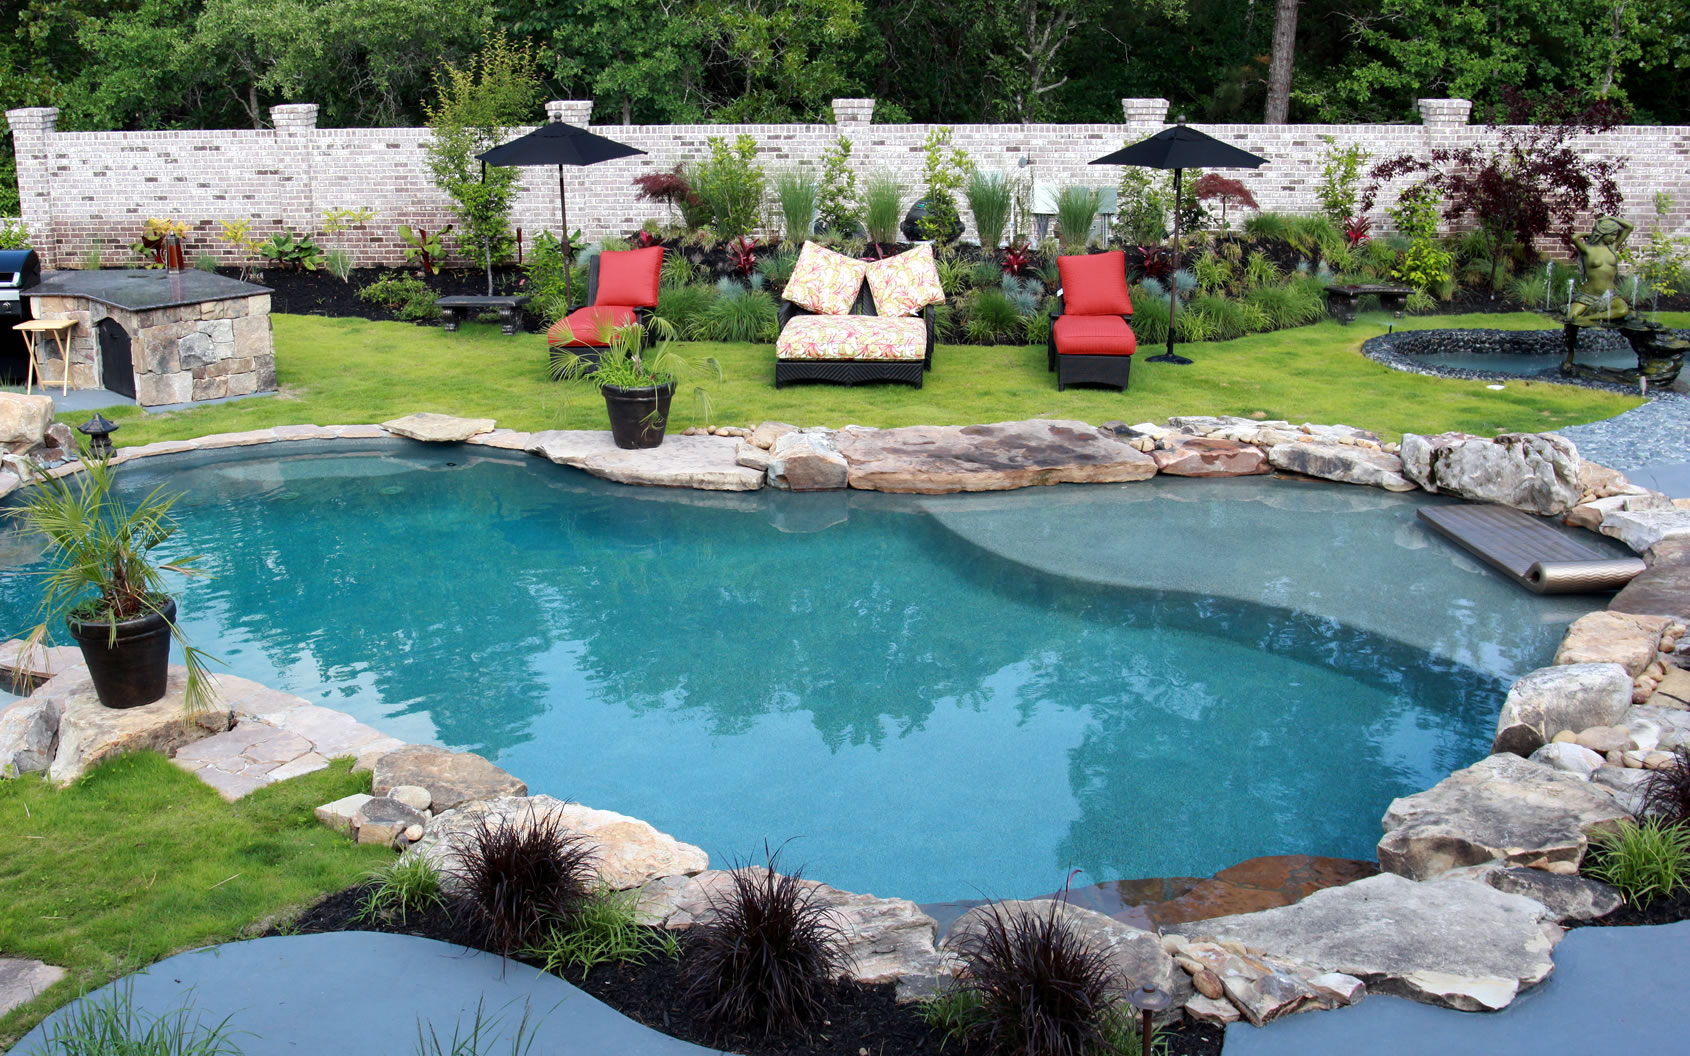 Residential pools spas by columbia and charleston south carolina pool designer crystal pools llc - Residential swimming pool designs ...